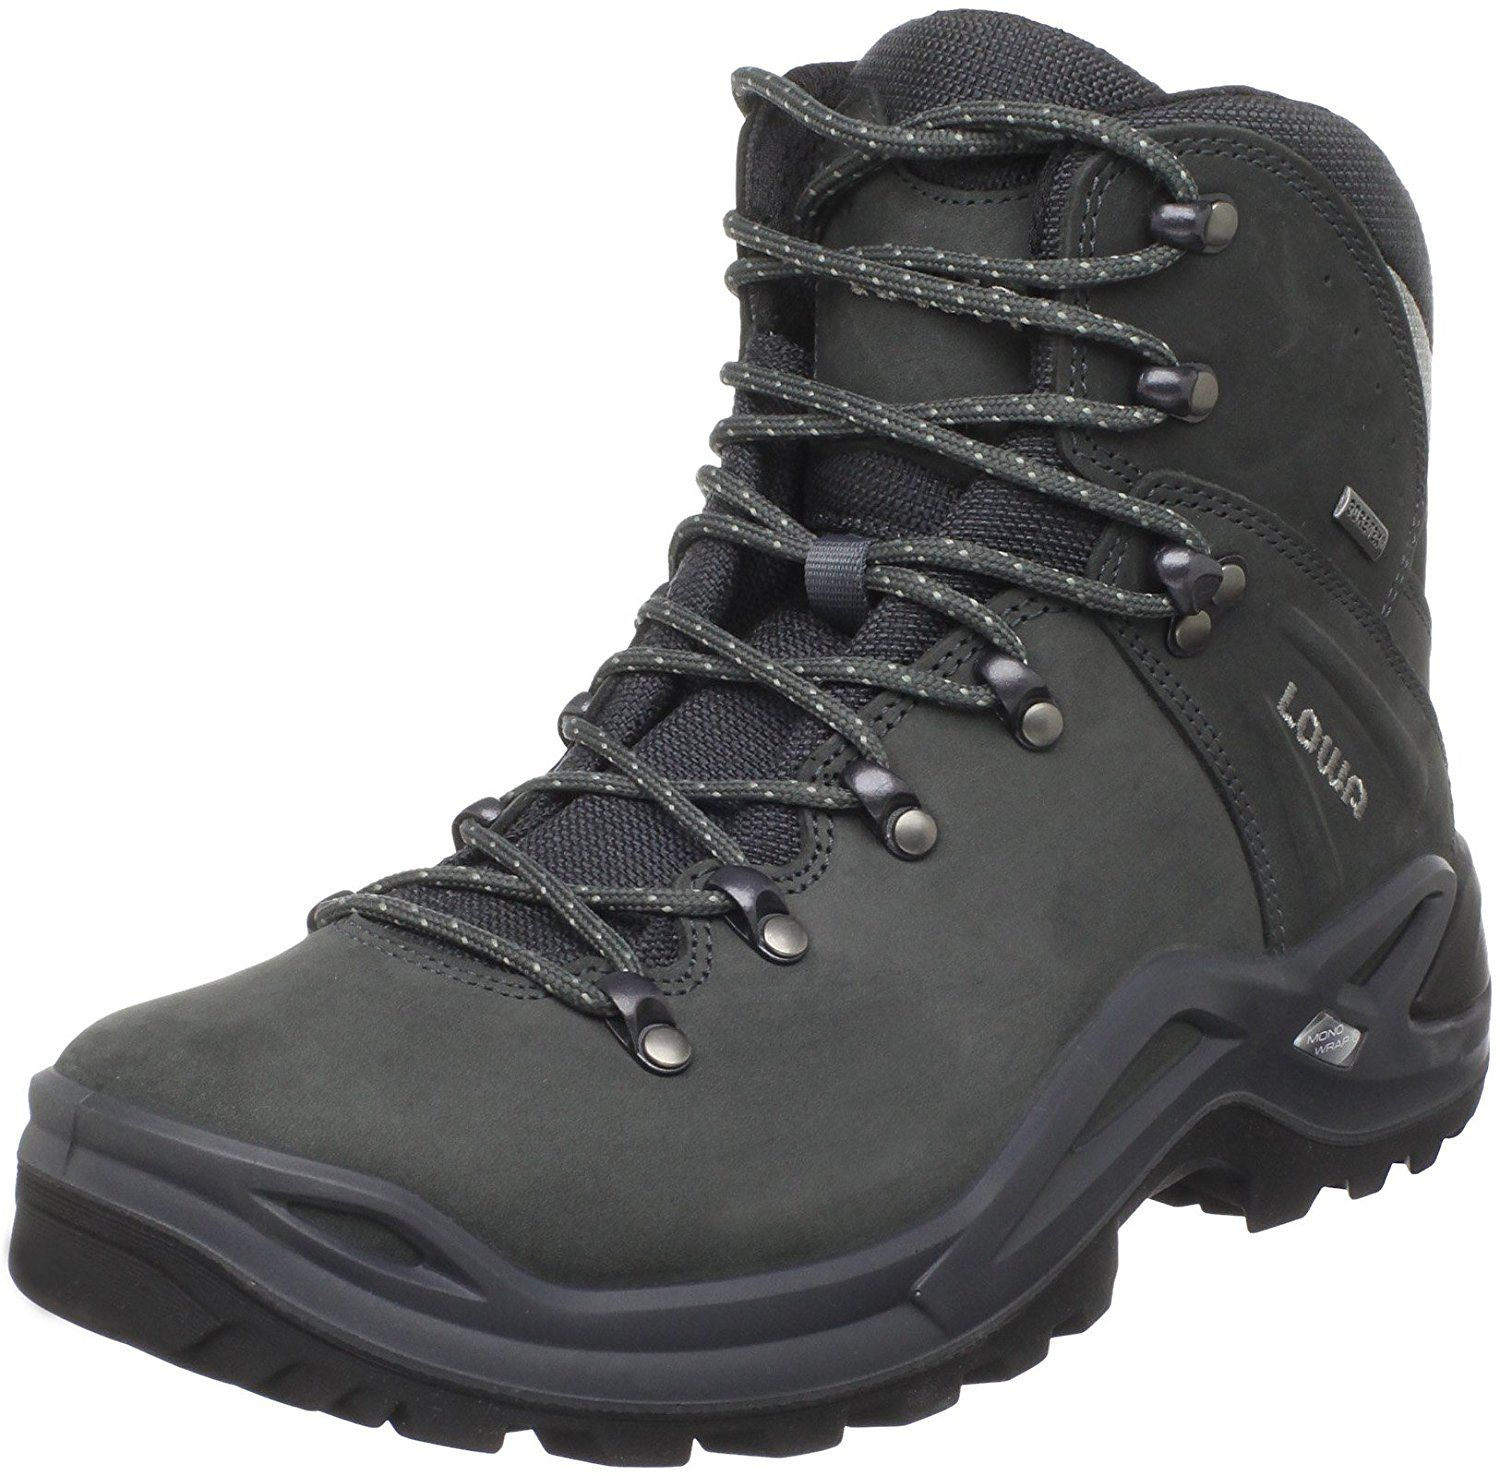 Lowa Men's Ronan GTX Mid Hiking Boot -- New and awesome boots awaits you, Read it now  : Boots for men